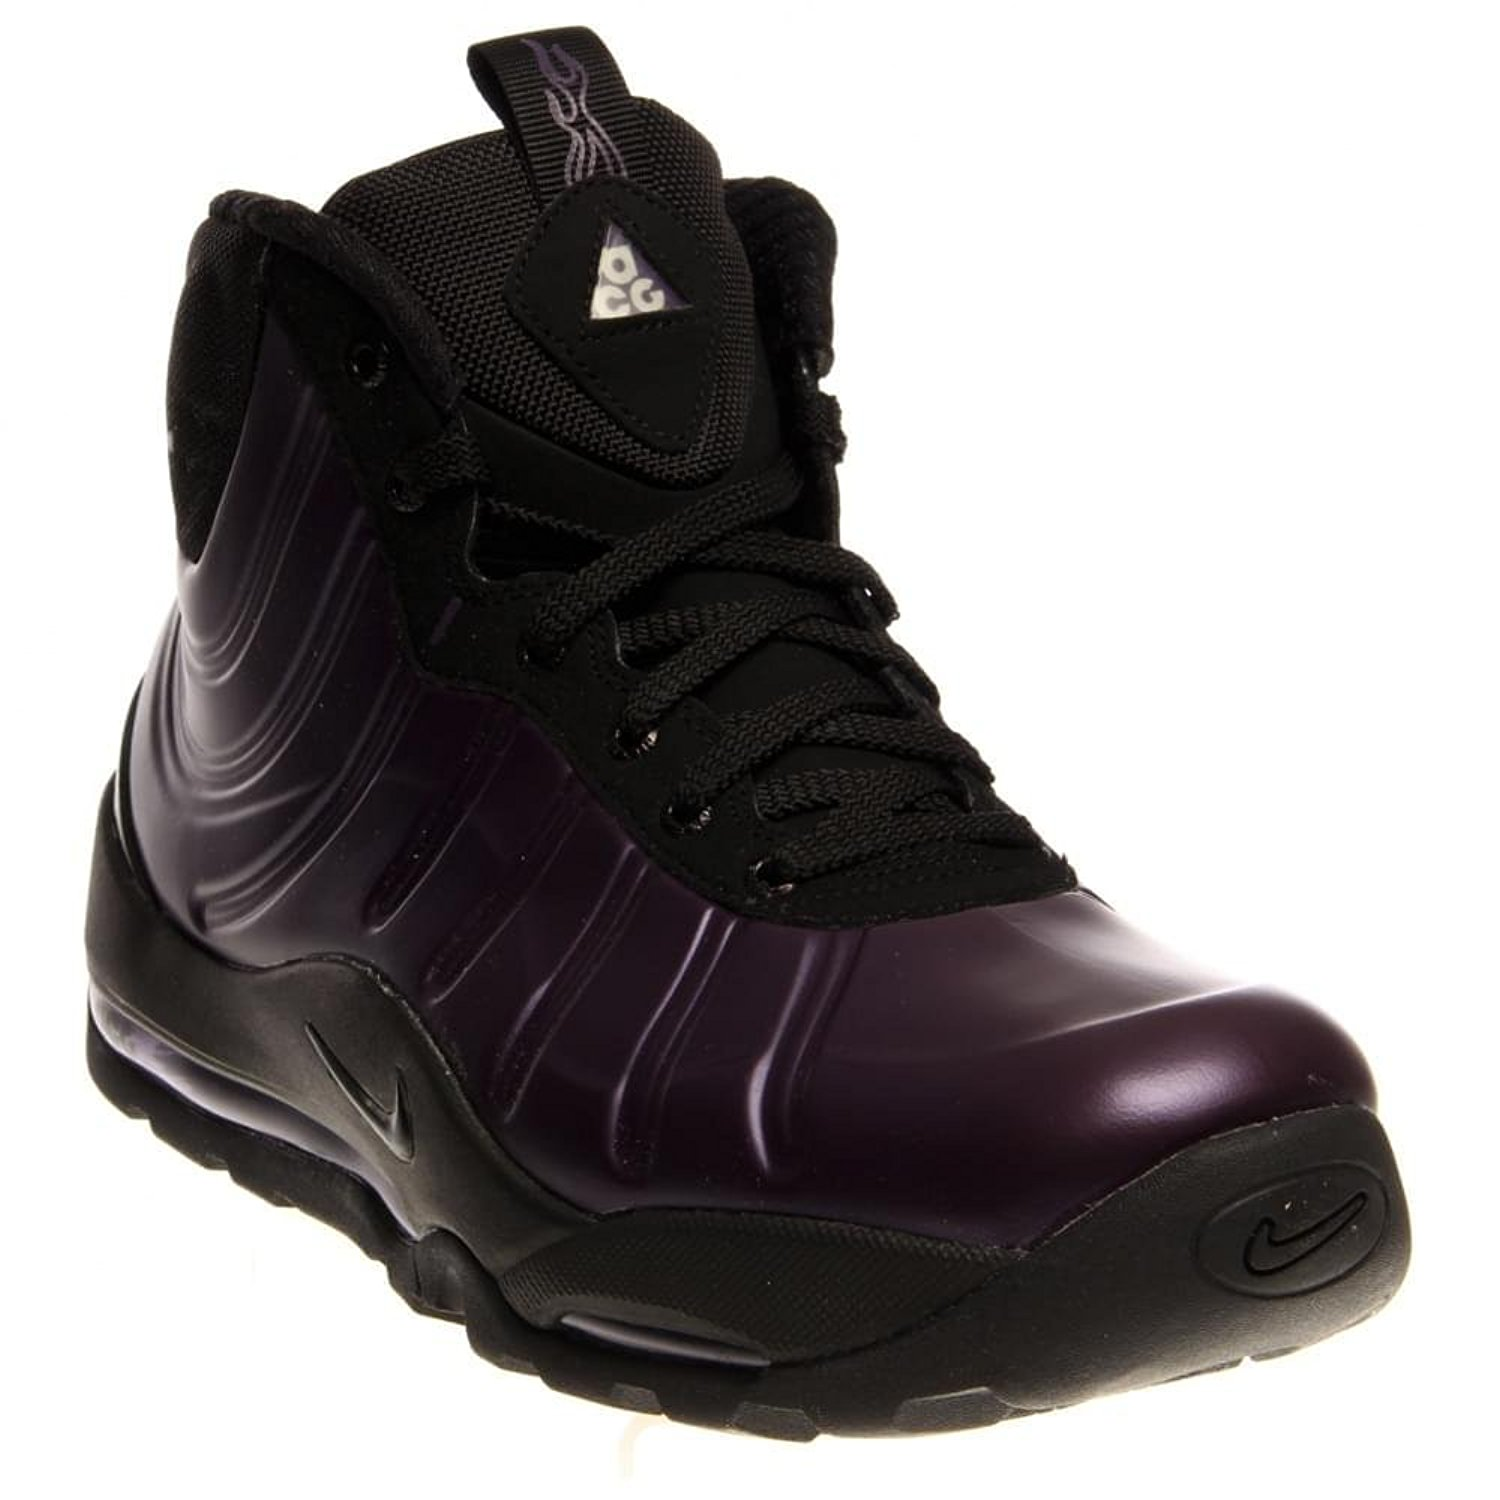 17ace441a9b21 Get Quotations · Nike Air Bakin Posite Mens basketball shoes Model 618056  508